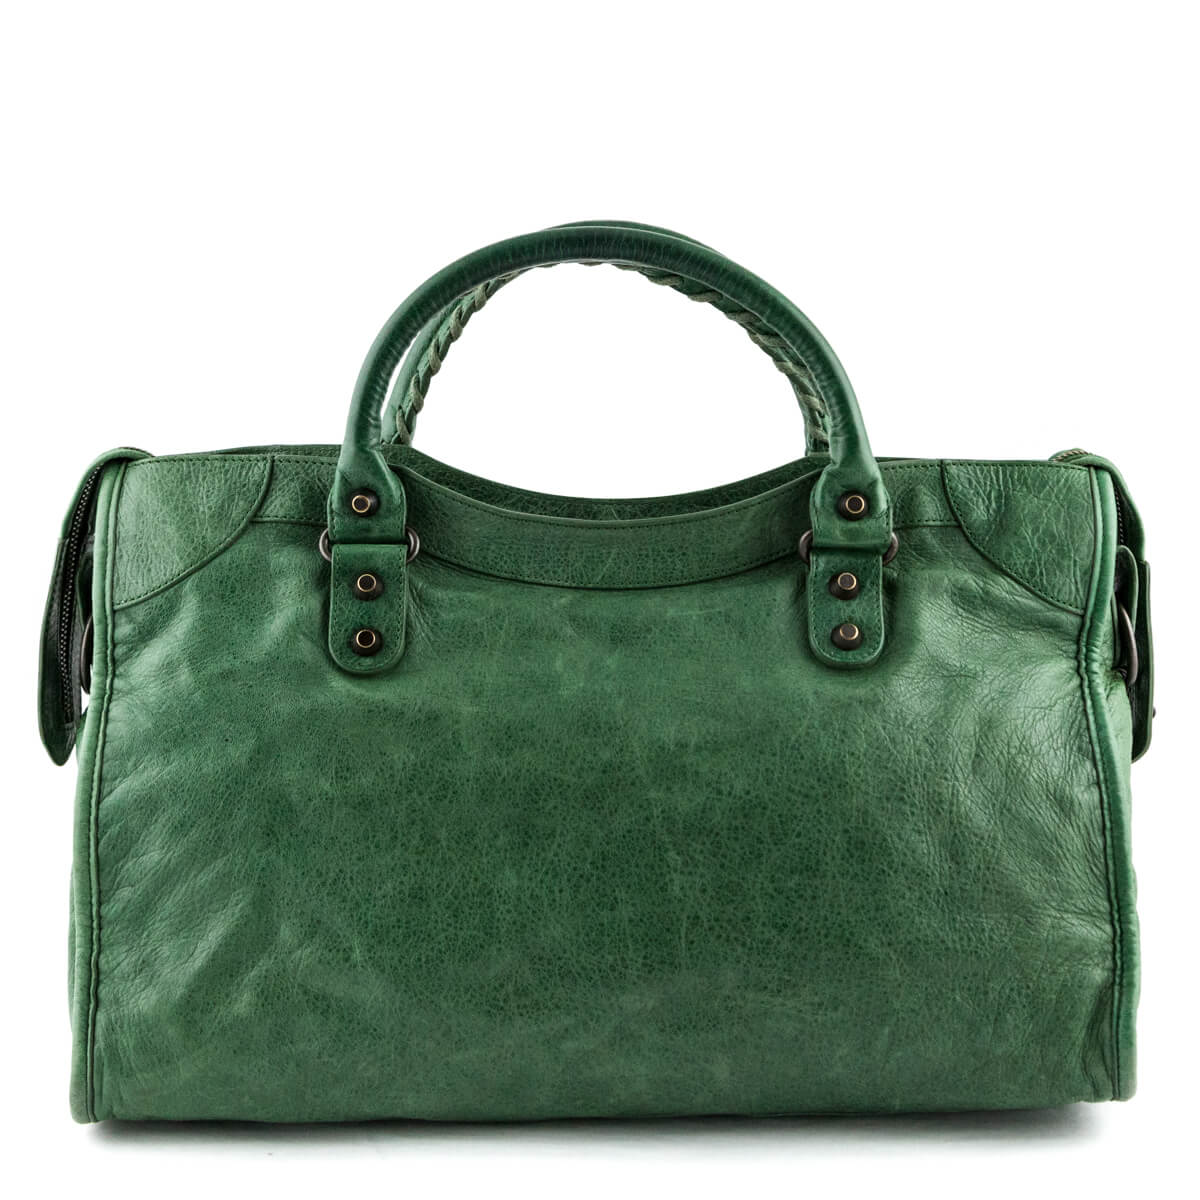 8e59afe252a172 ... Balenciaga Cypress Lambskin Motocross Classic City Bag - LOVE that BAG  - Preowned Authentic Designer Handbags ...